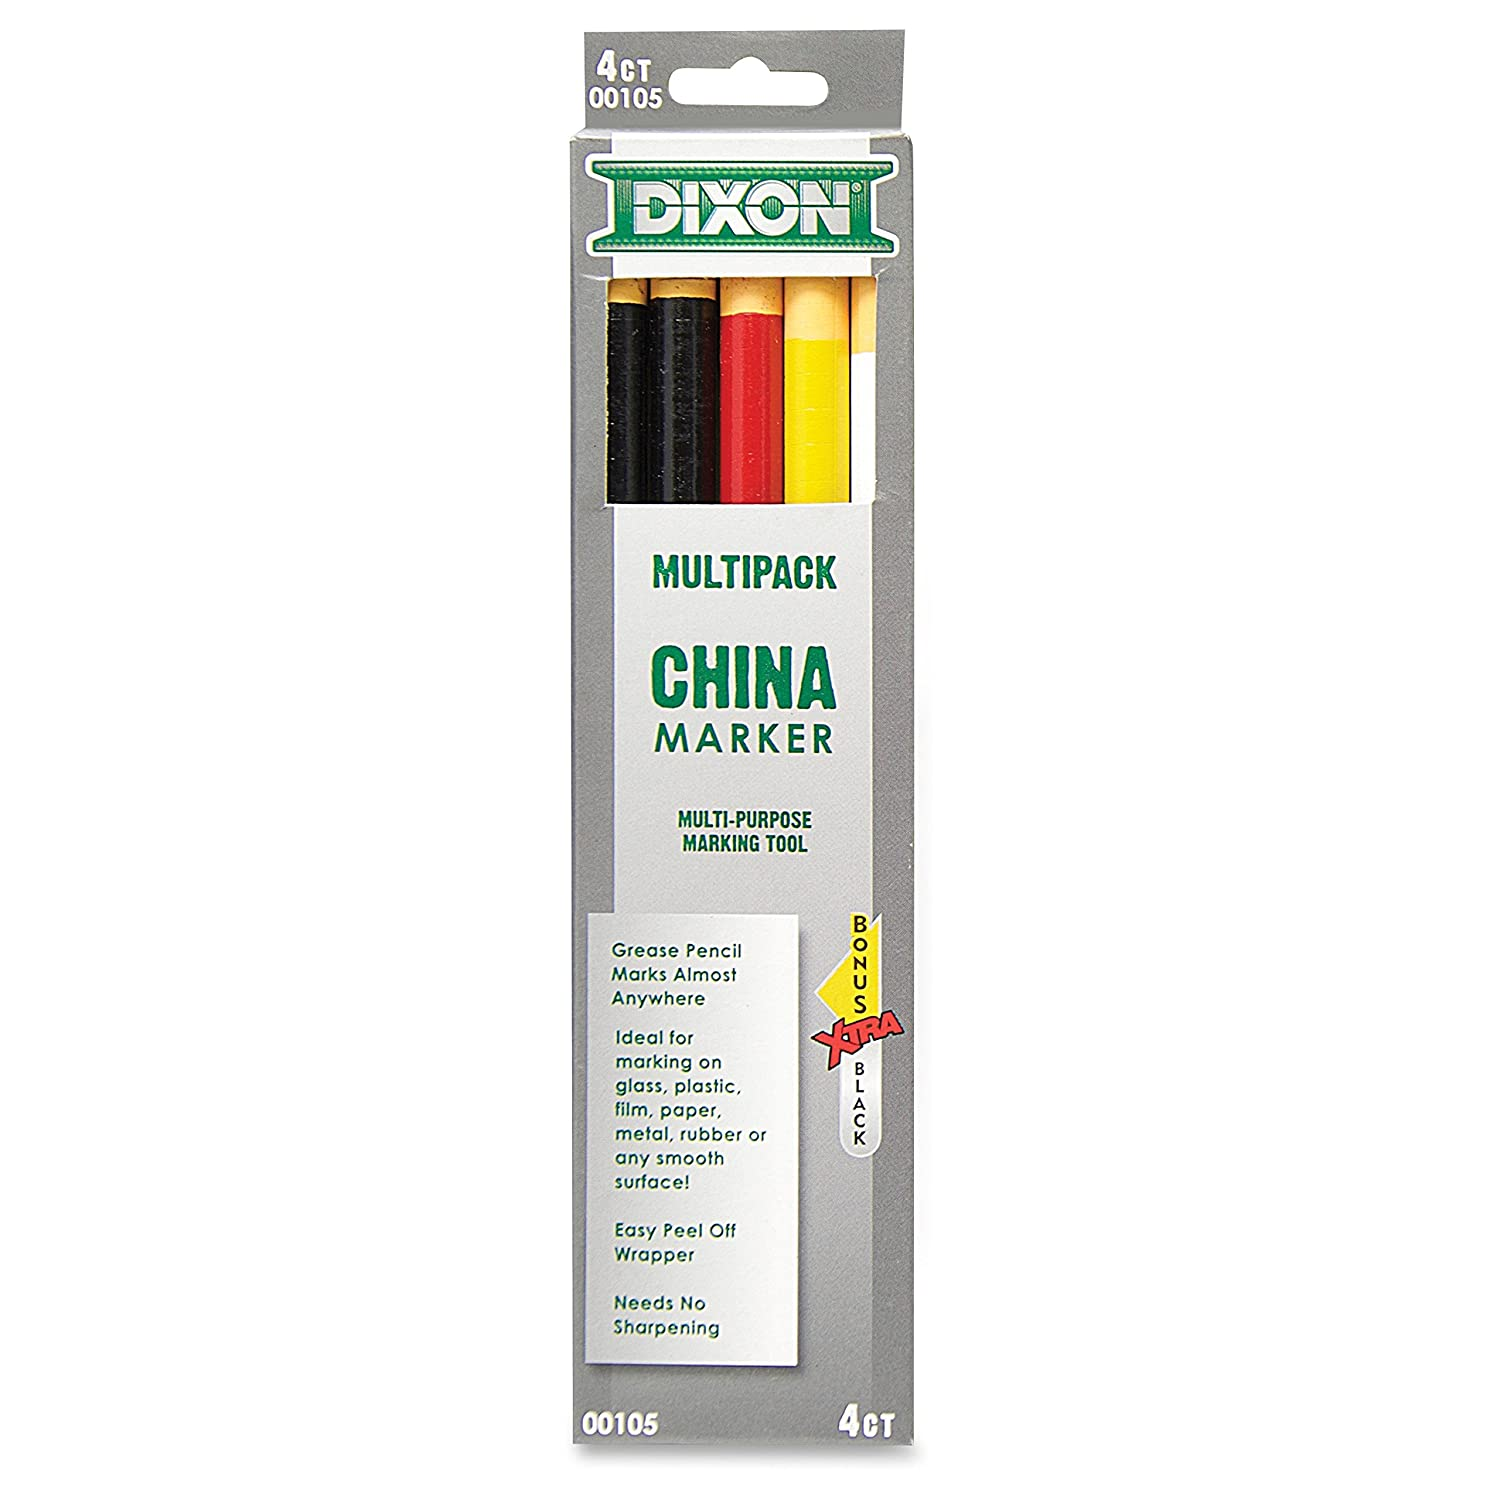 Dixon Phano China Marker, Black/Red/White/Yellow, Bonus Black (00105) Dixon Ticonderoga